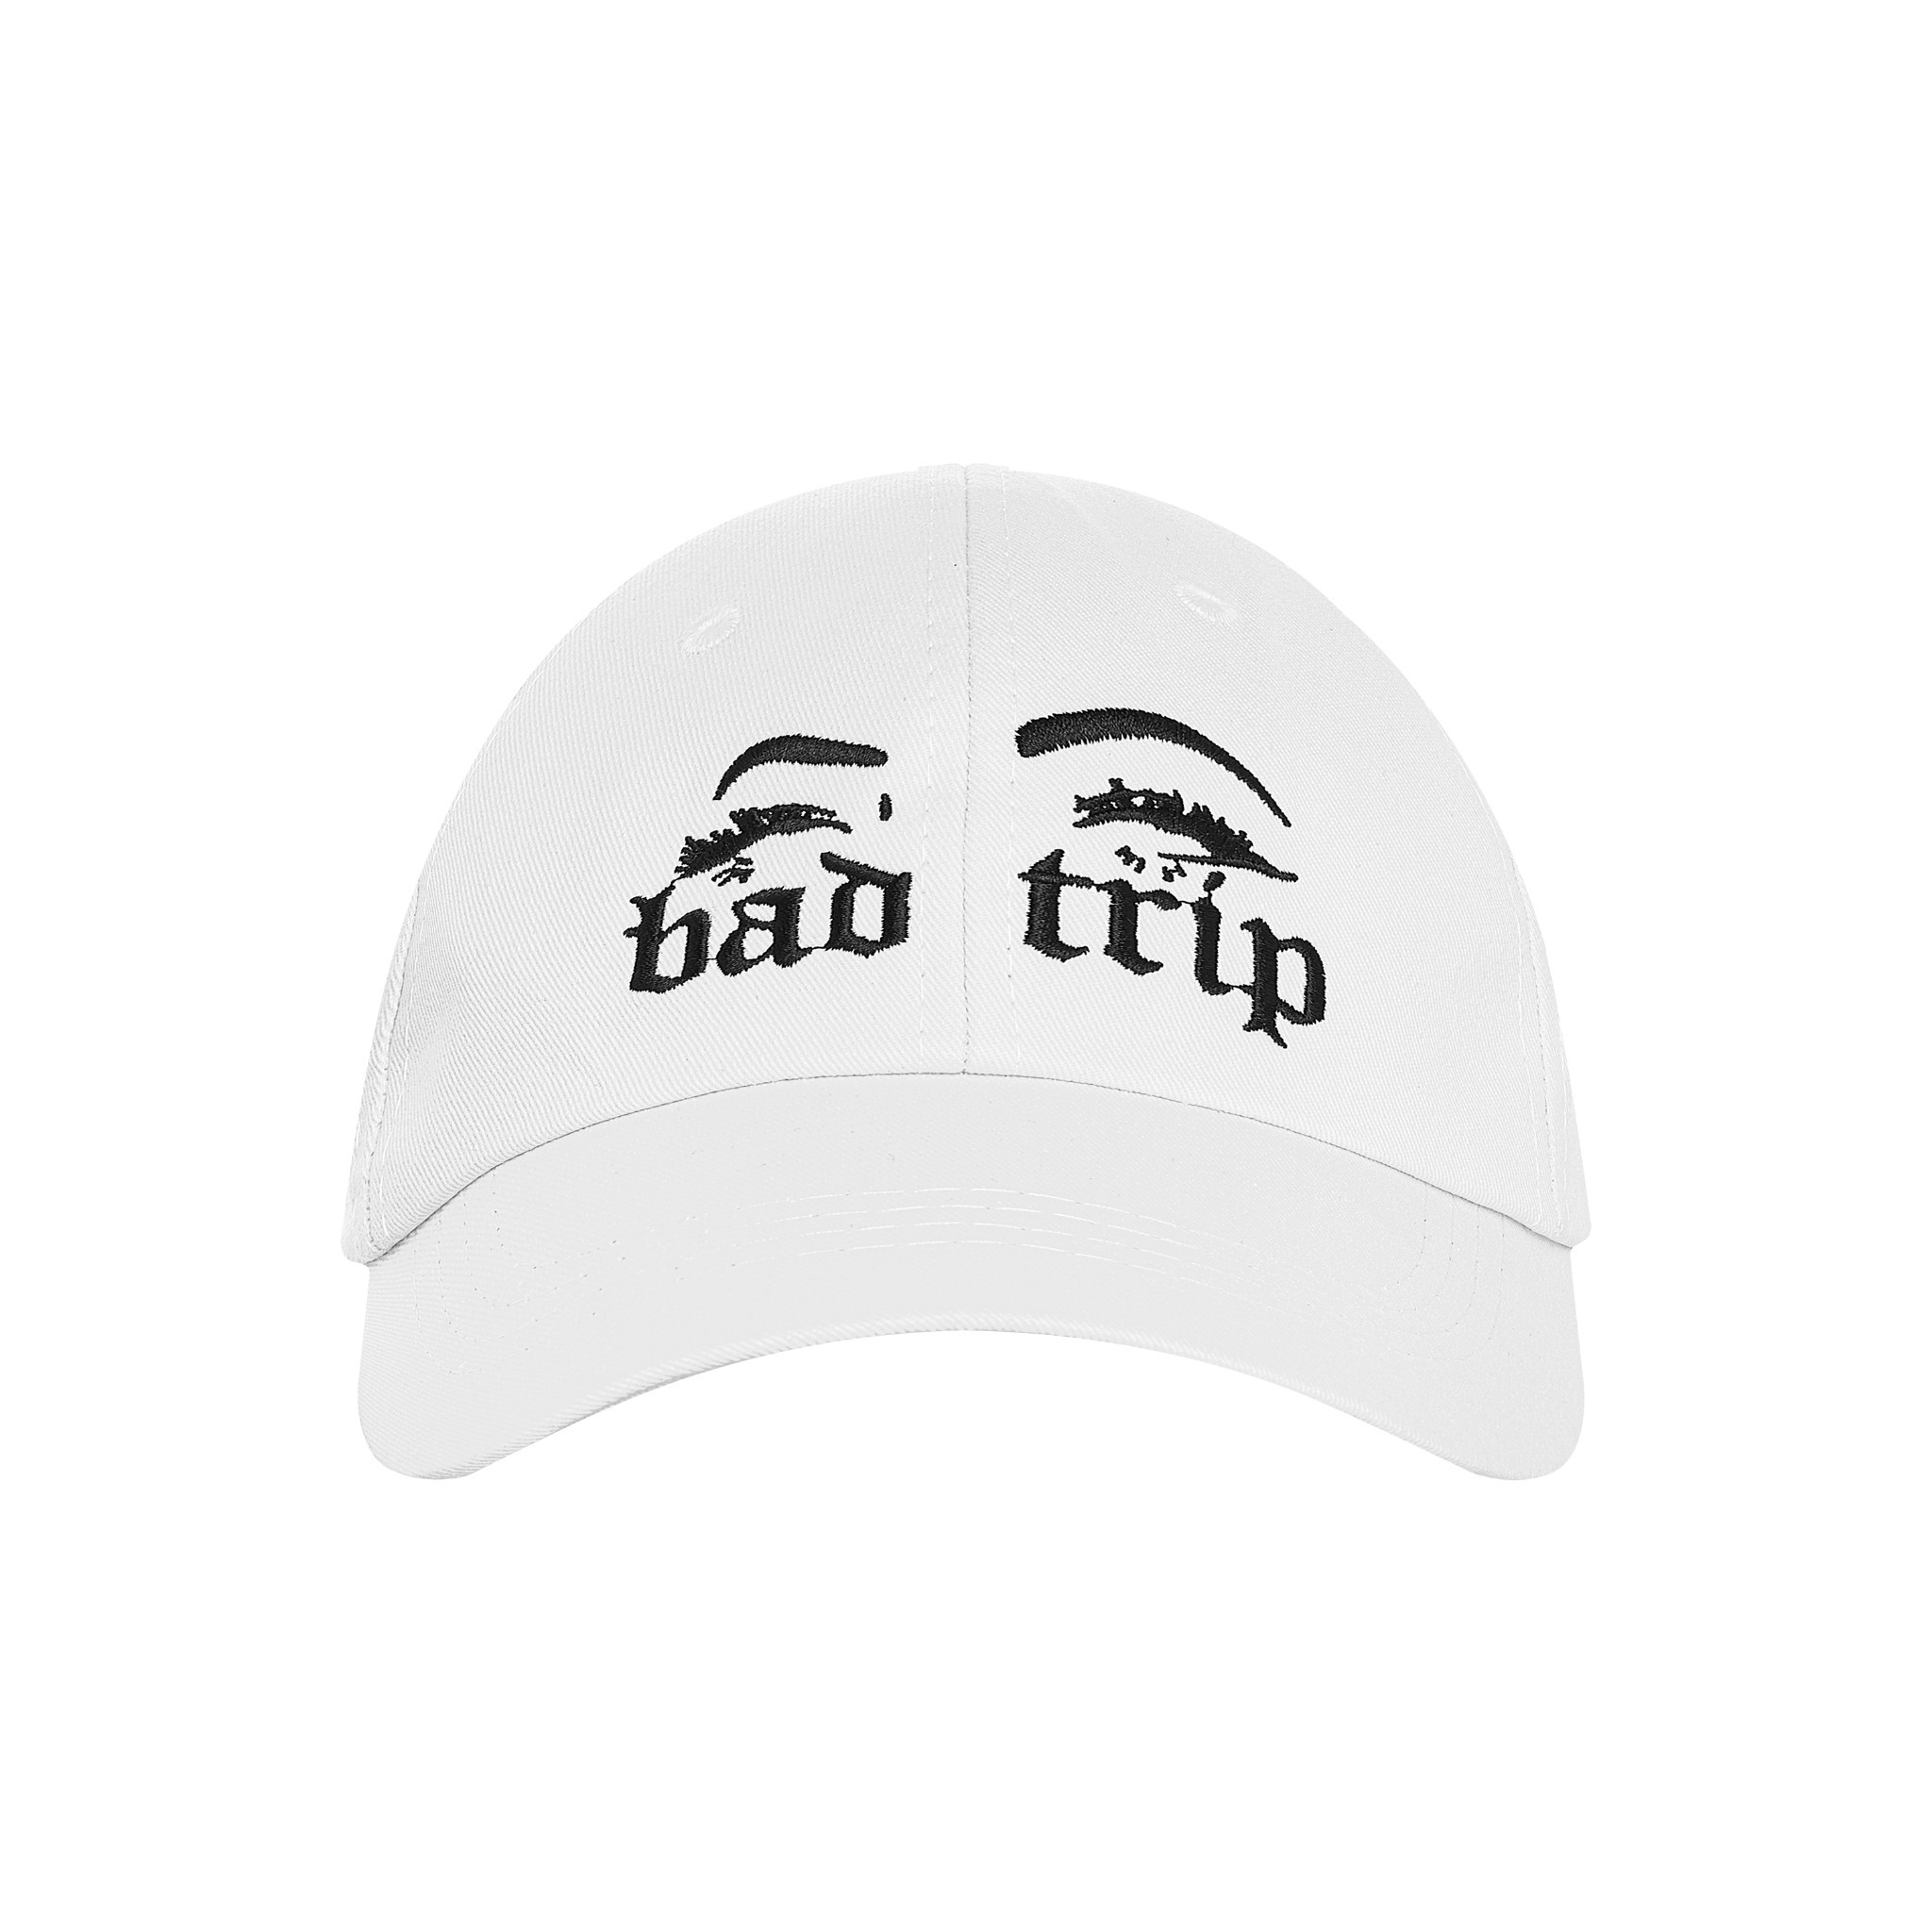 BAD TRIP CAP (WHITE) - BLACK WORDING